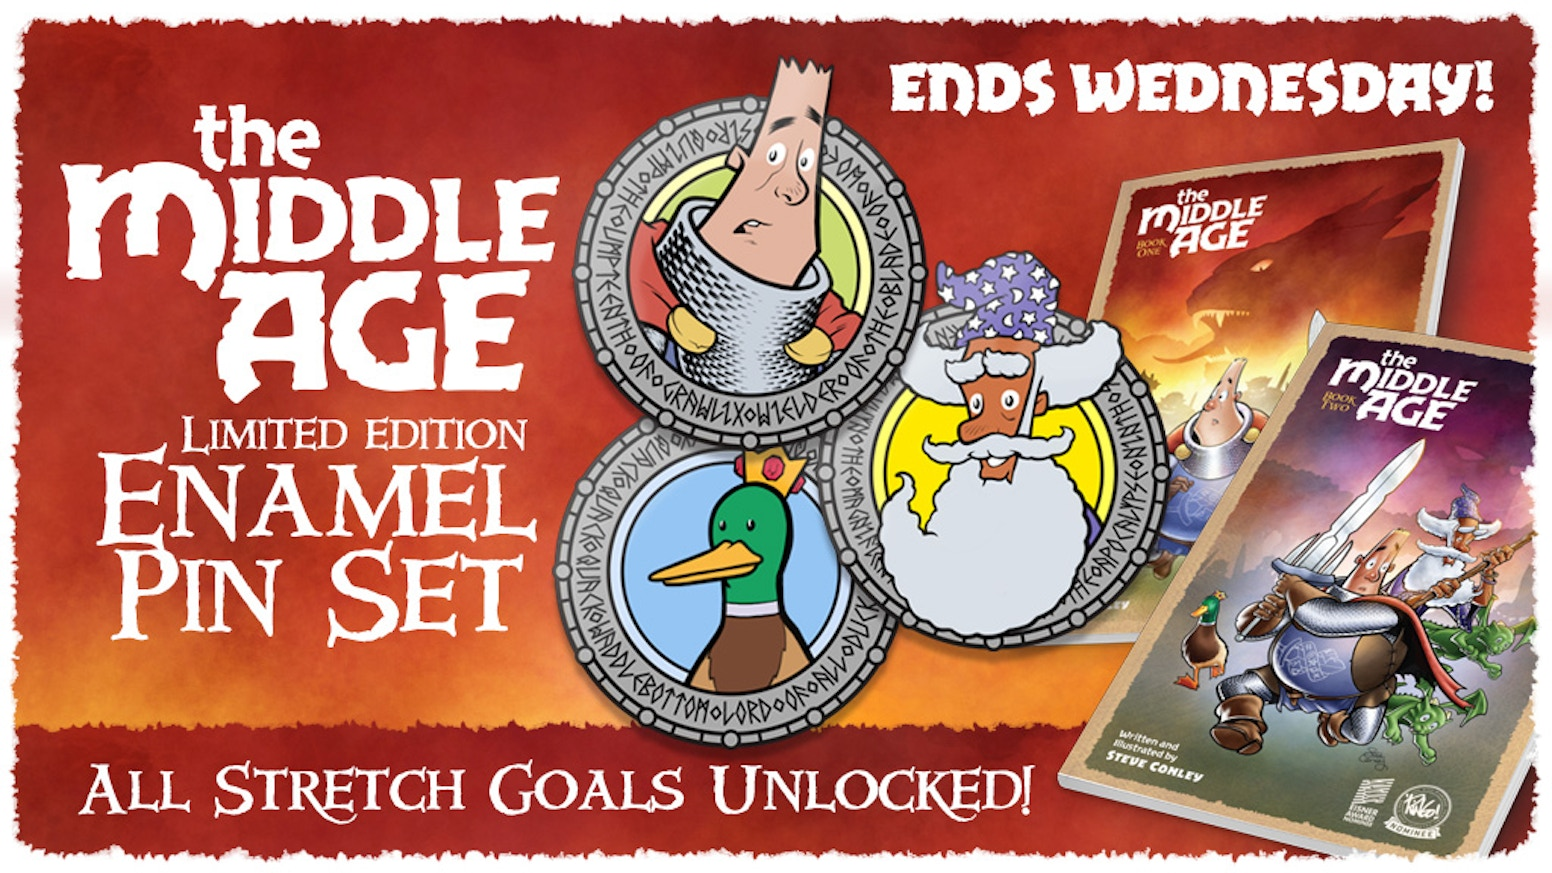 We're making three high-quality enamel pins based on characters from the acclaimed webcomic series, The Middle Age.